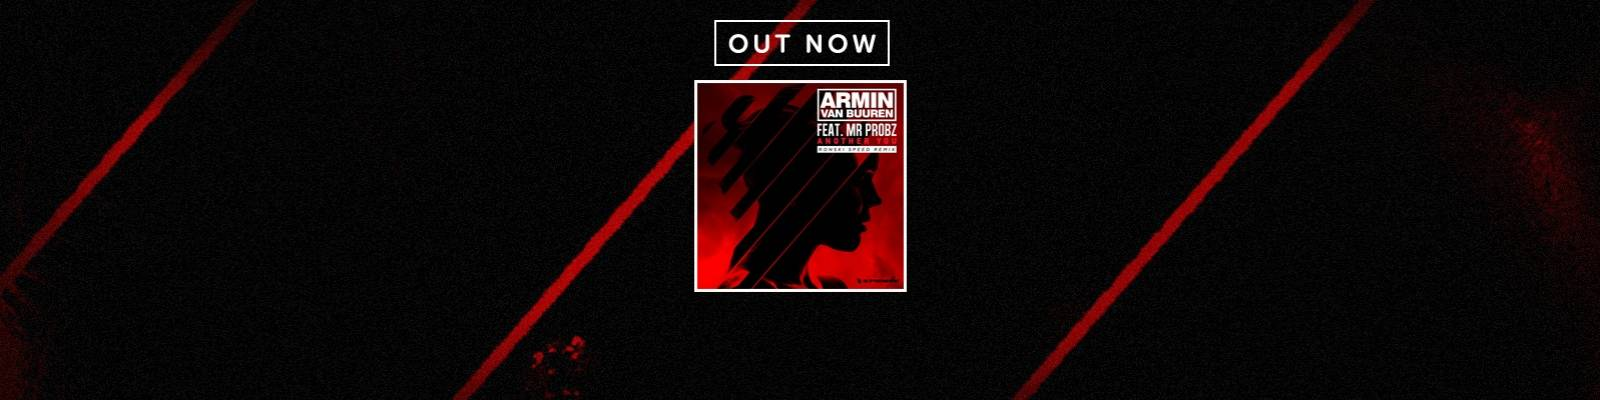 OUT NOW on Armind: Armin van Buuren feat. Mr. Probz – Another You (Ronski Speed Remix)